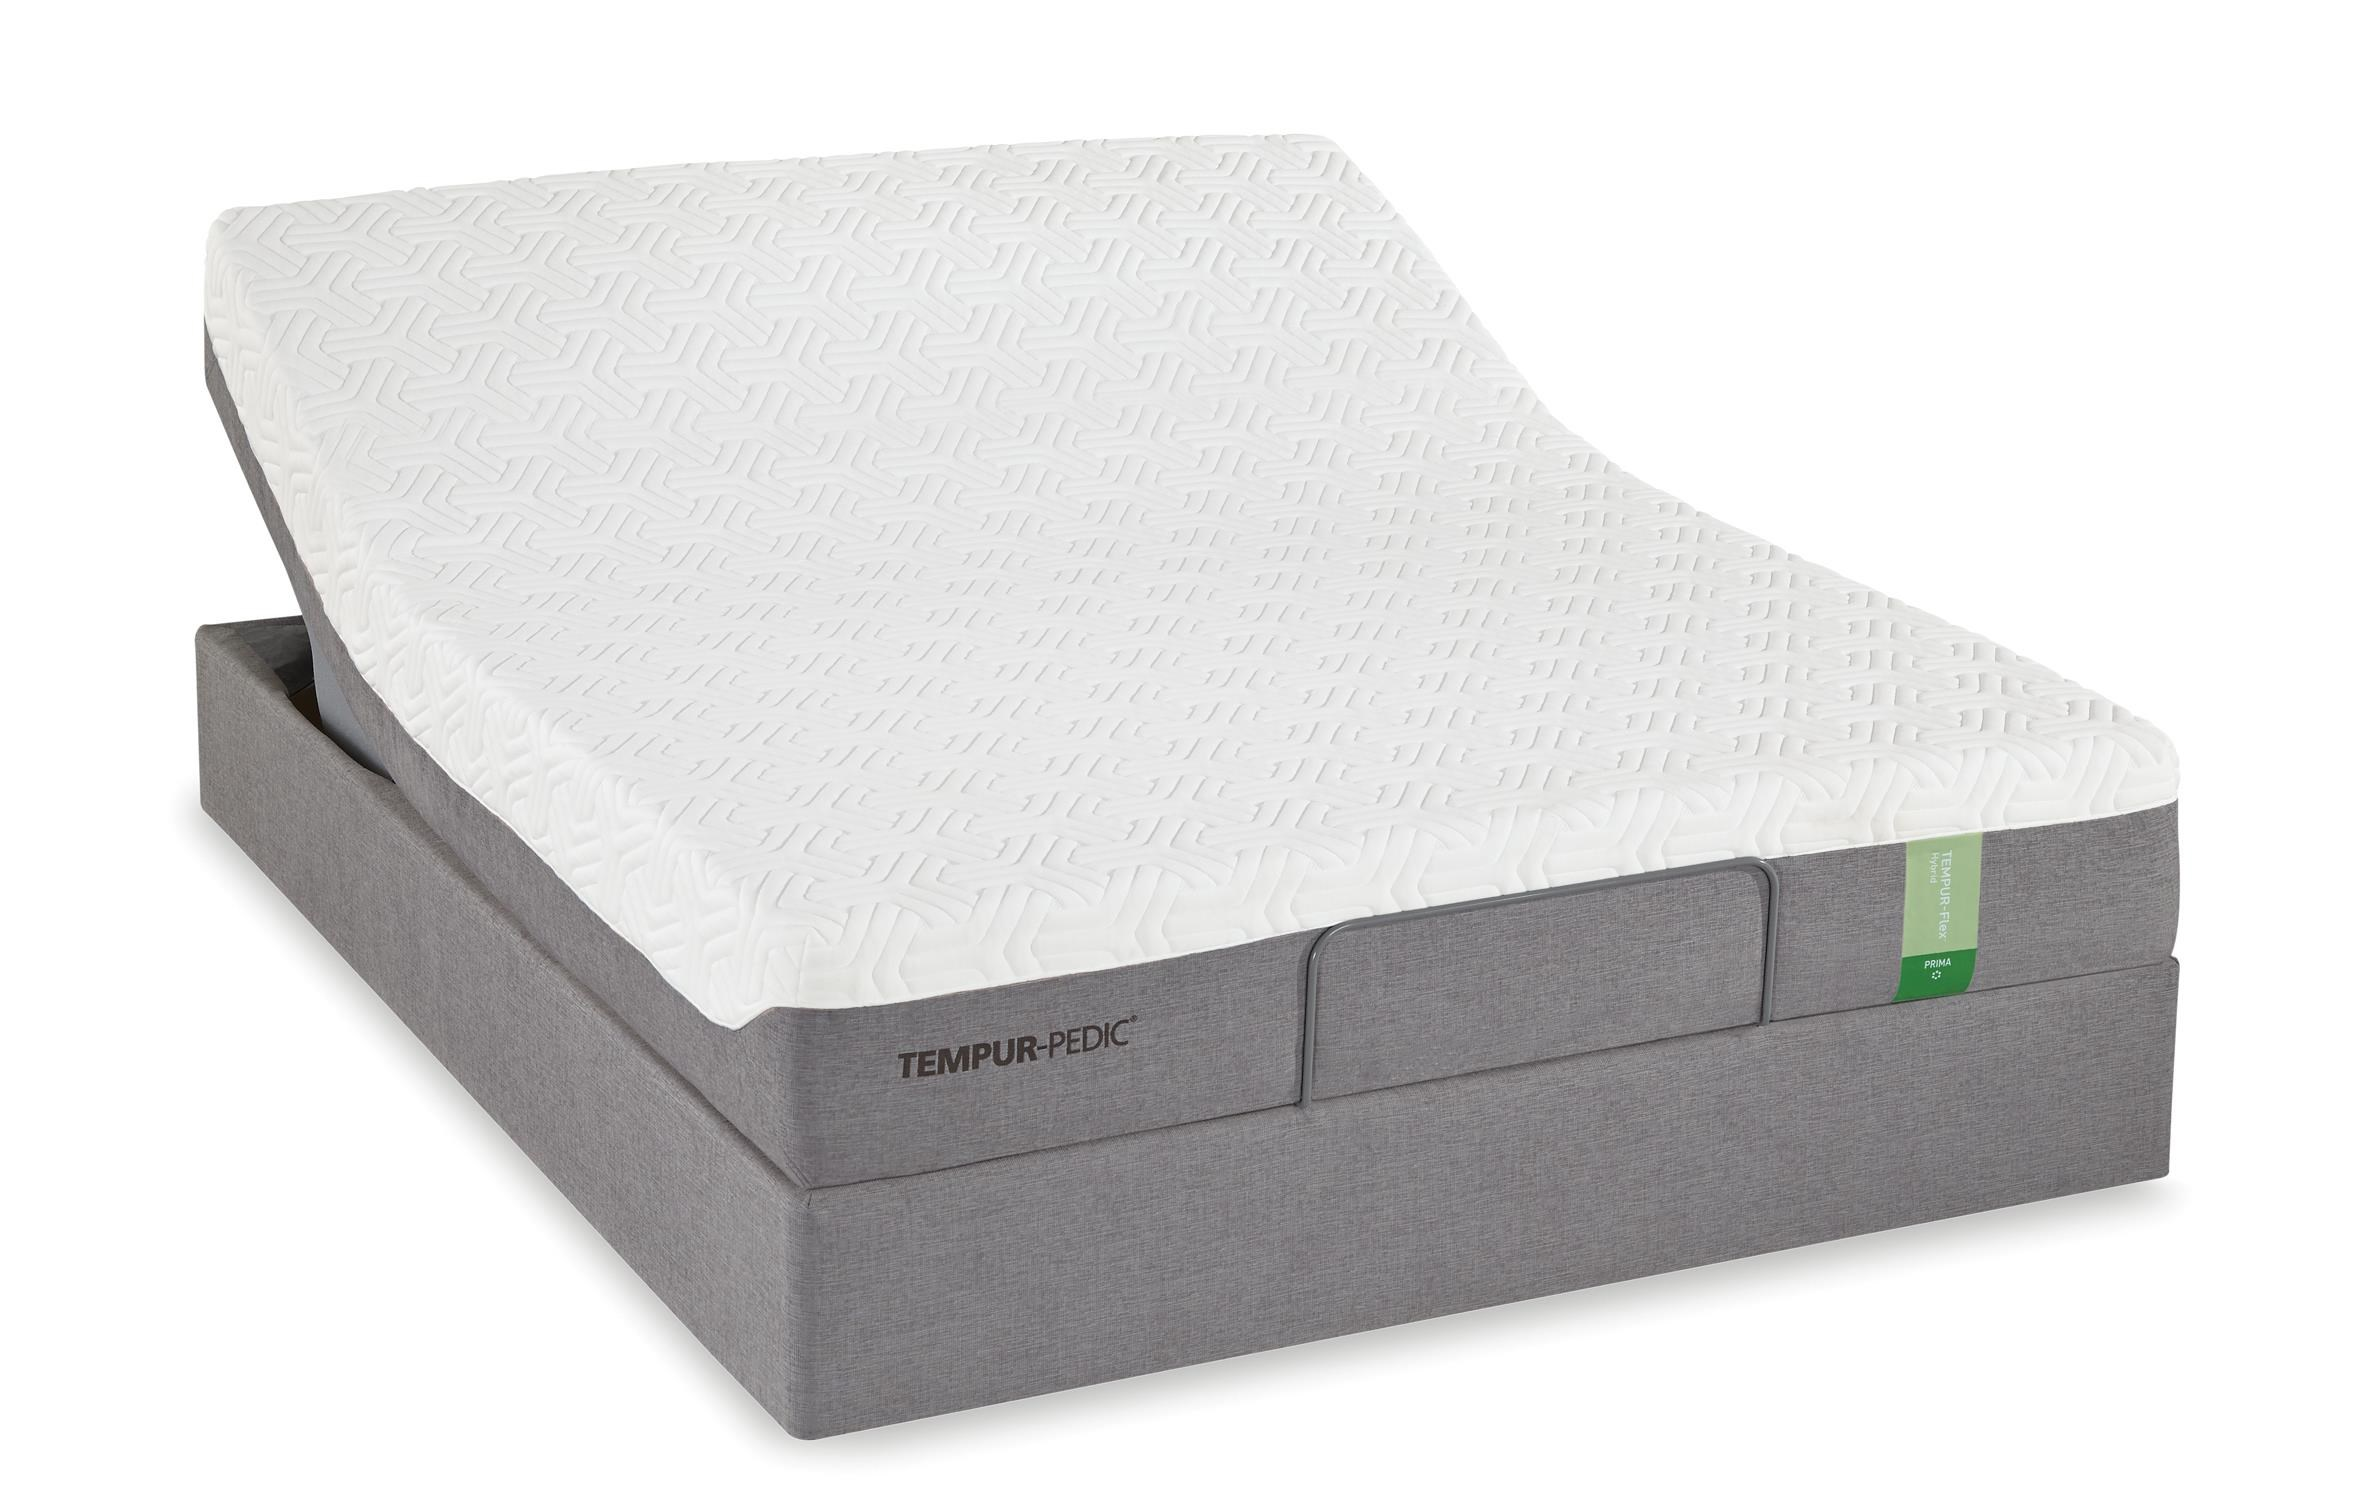 Tempur Pedic 174 Tempur Flex Supreme Queen Medium Plush